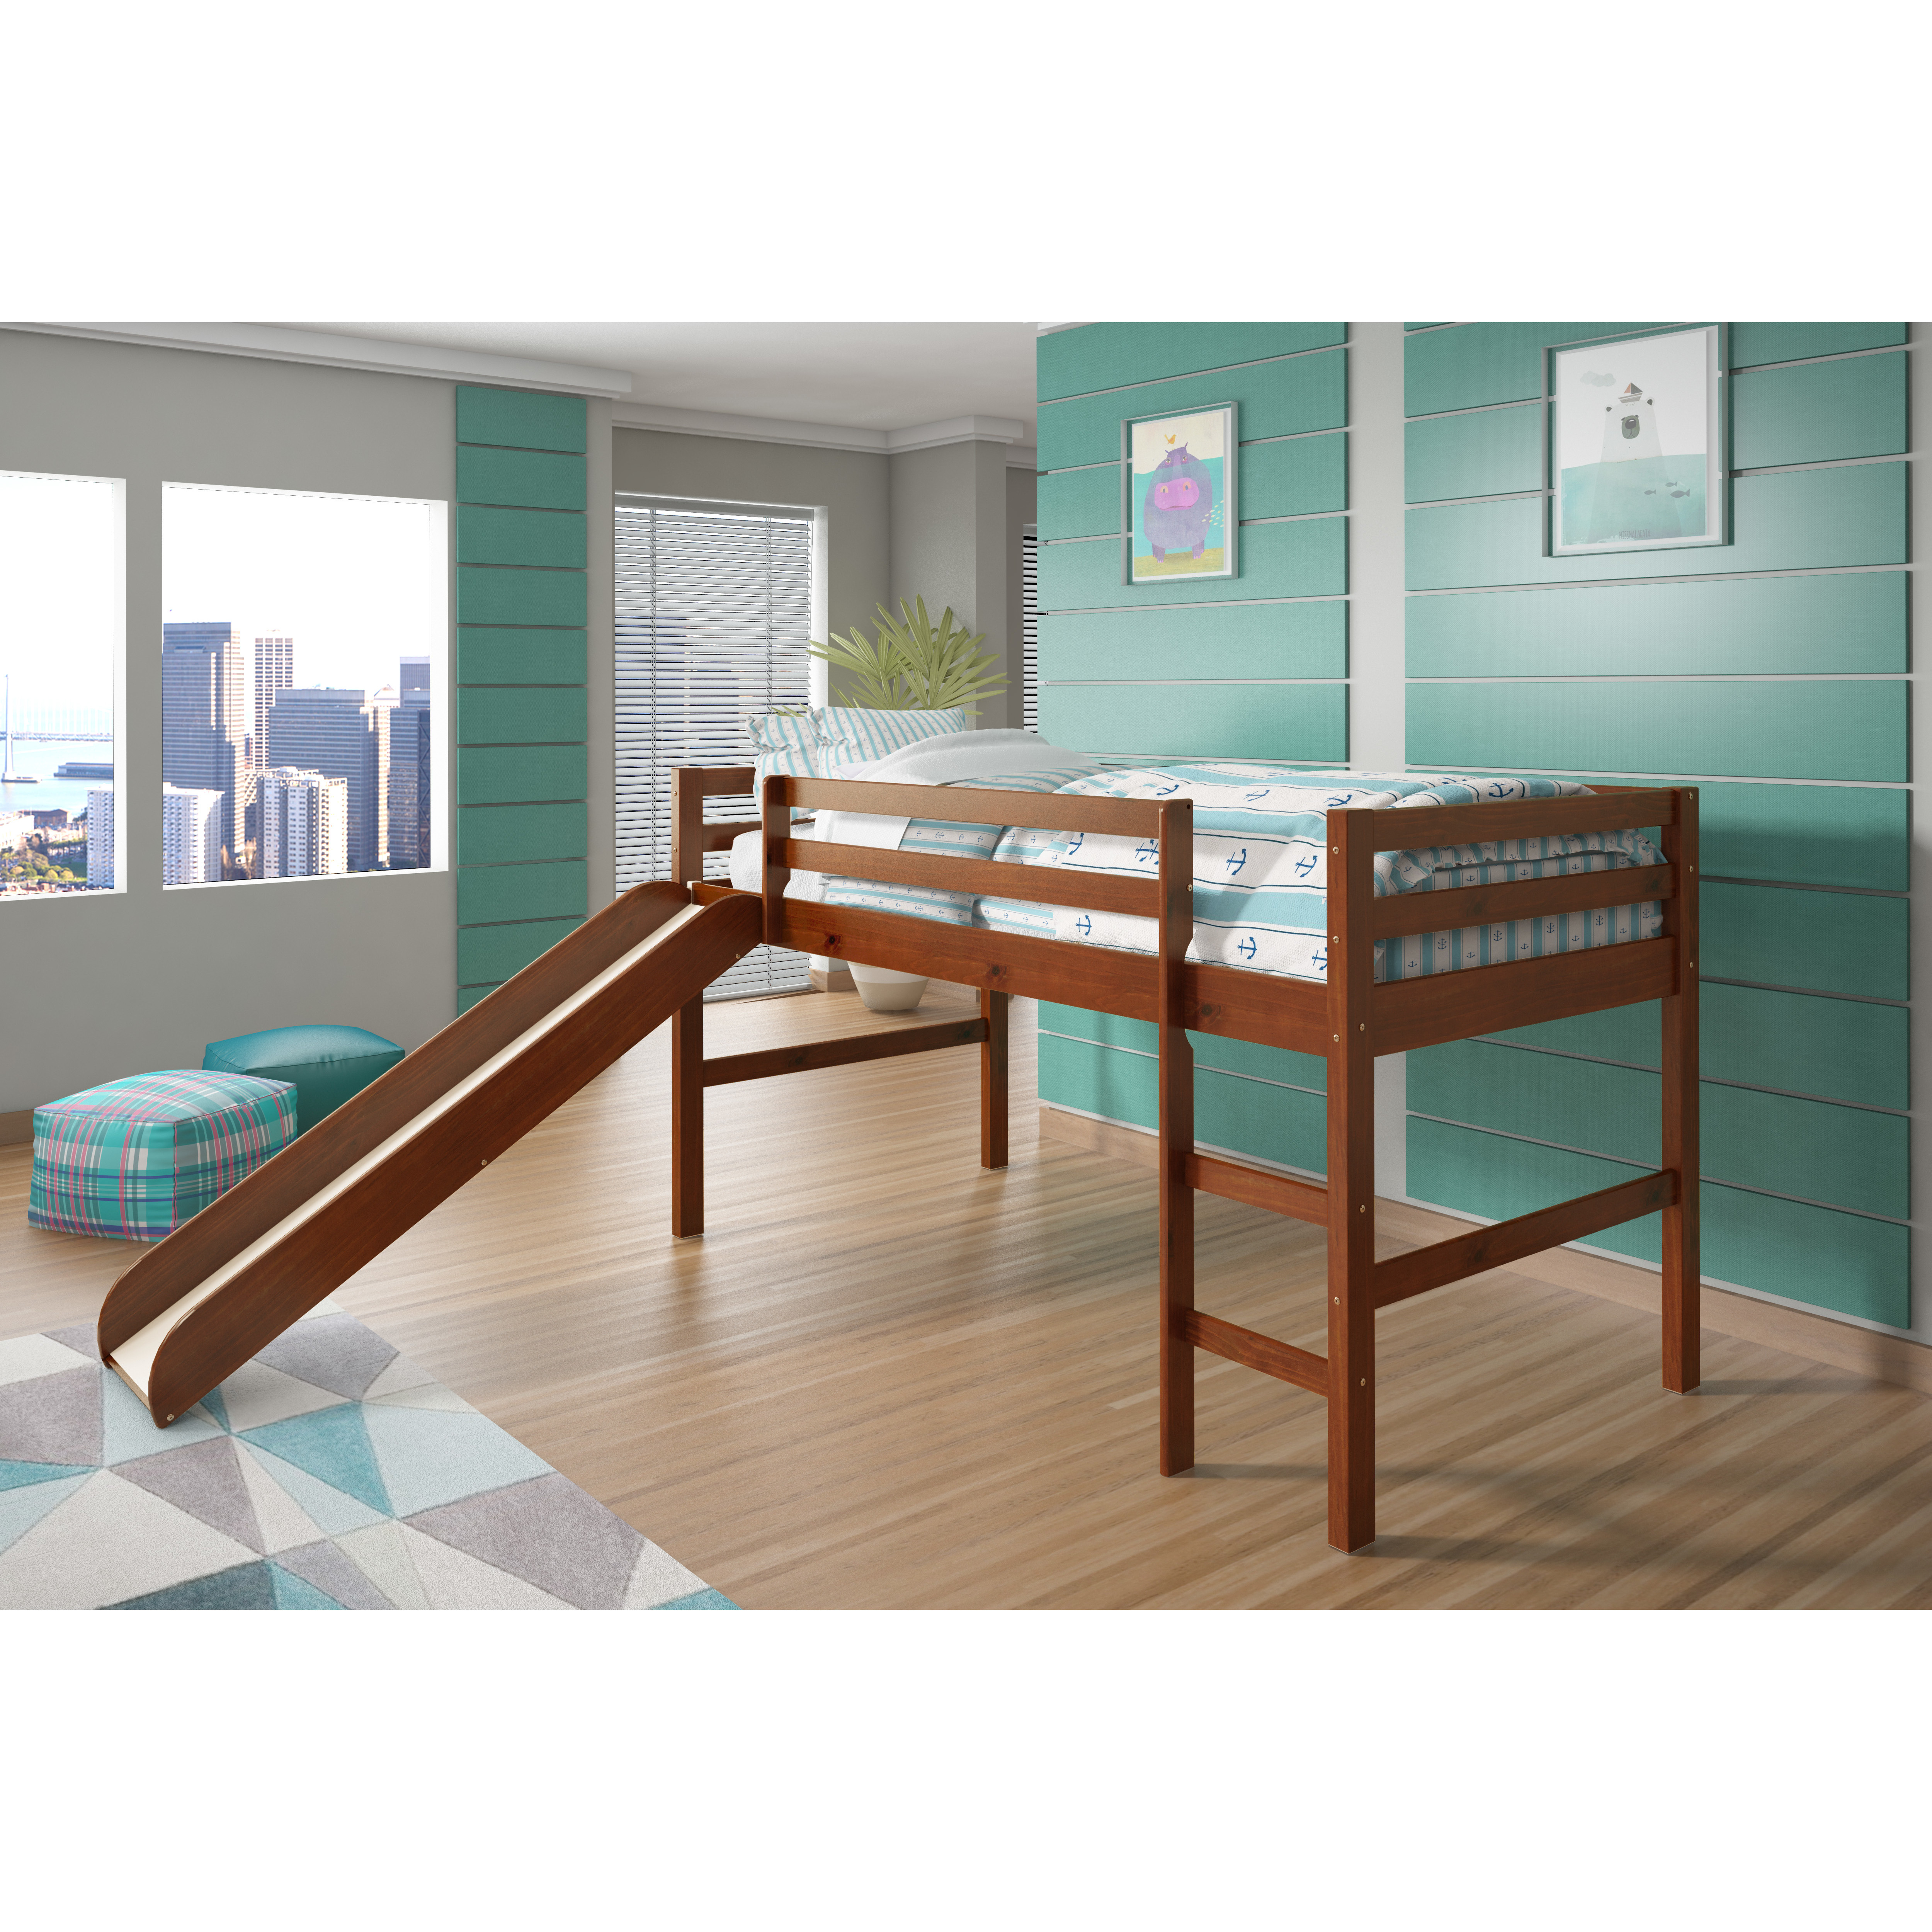 twin low loft beds for kids photo - 7